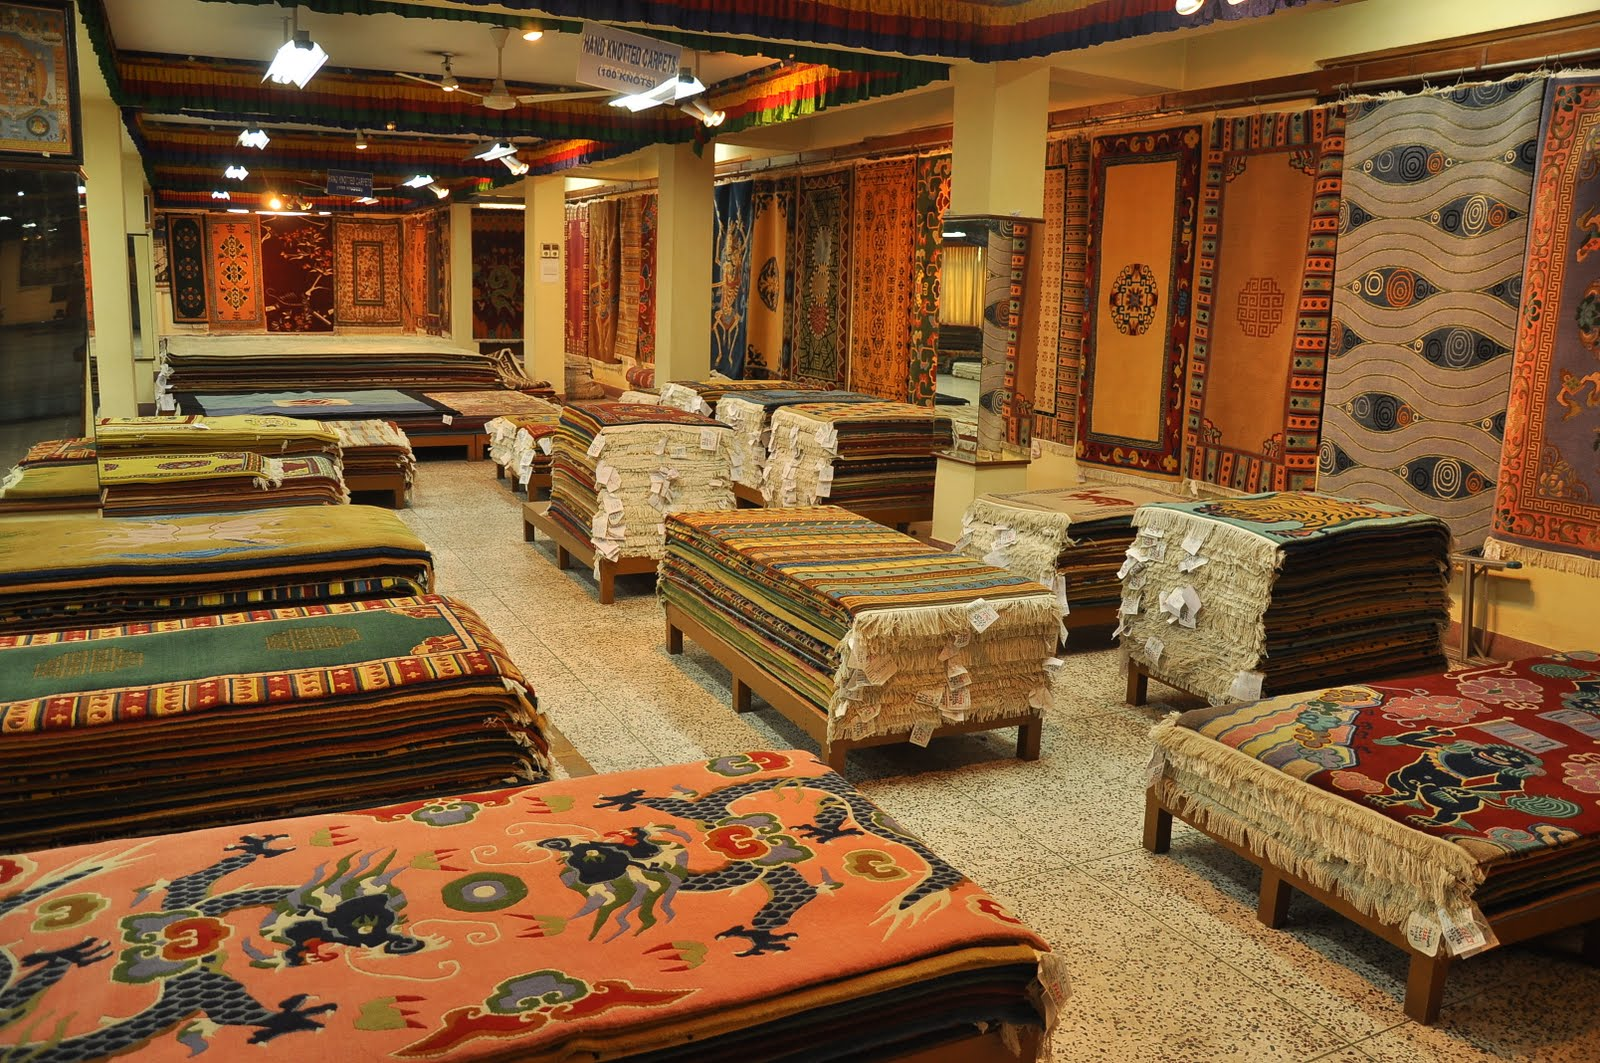 carpet industries in nepal The handmade woolen carpet industry is extremely labor intensive and one of the largest export earners for india, pakistan, nepal and morocco during the past 20.